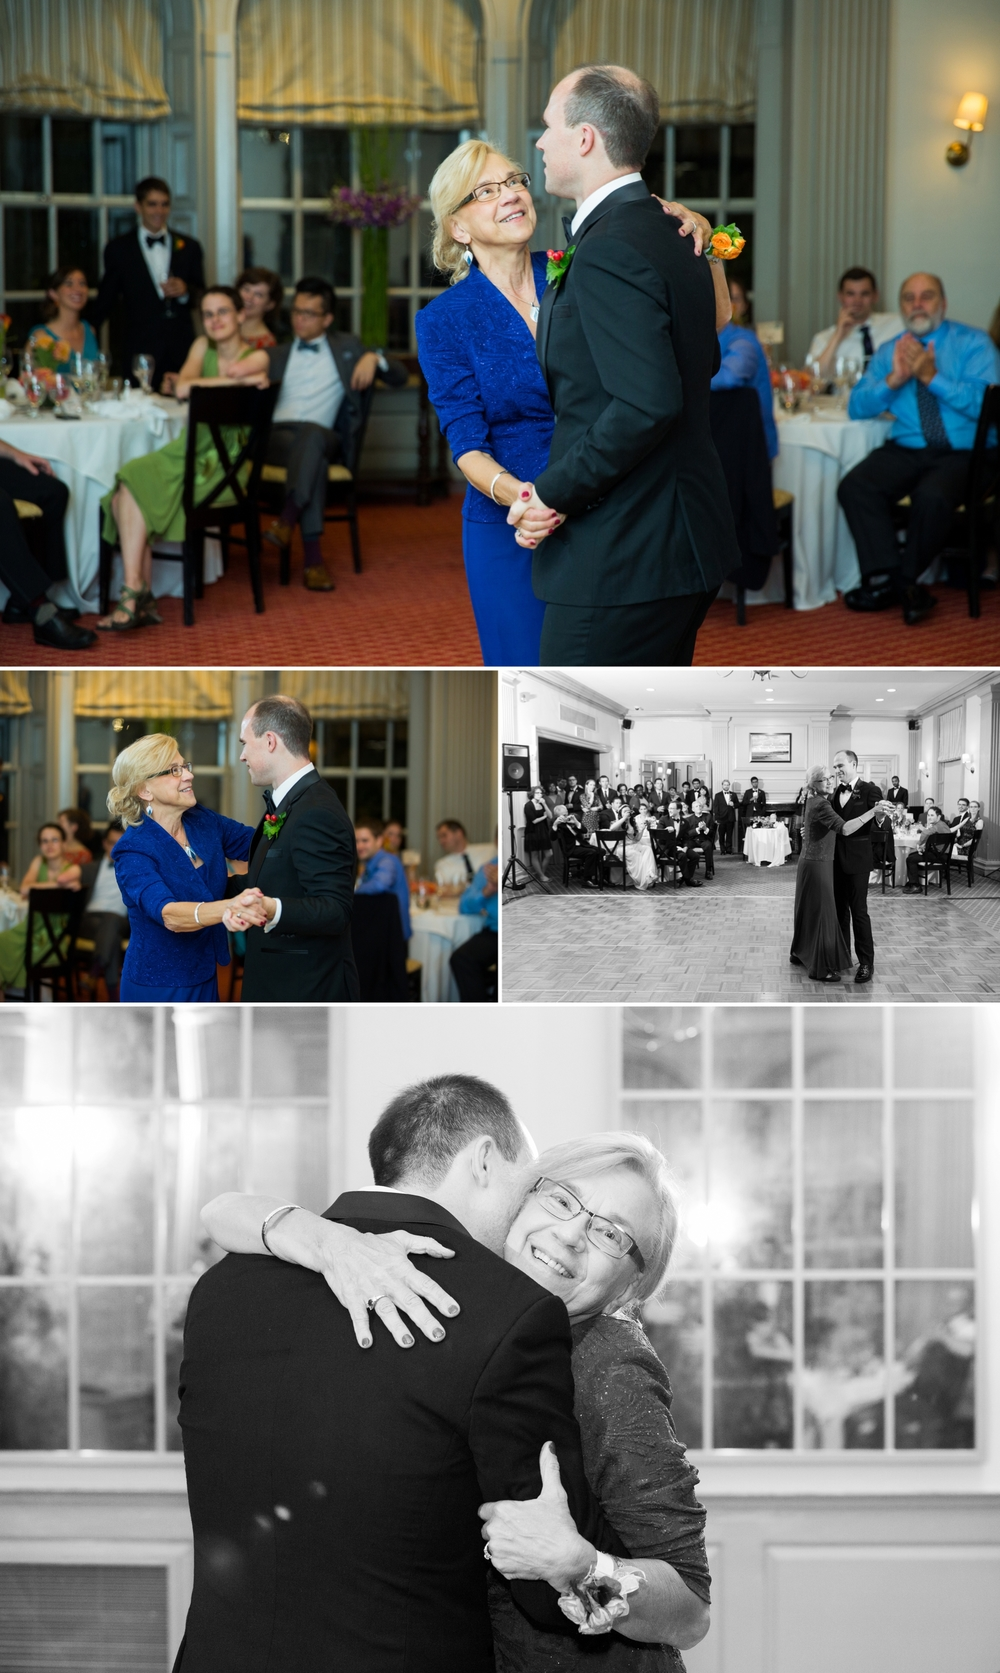 HarvardFacultyClubWedding_BostonMAFallWedding_MichelleGirardPhotography54.jpg